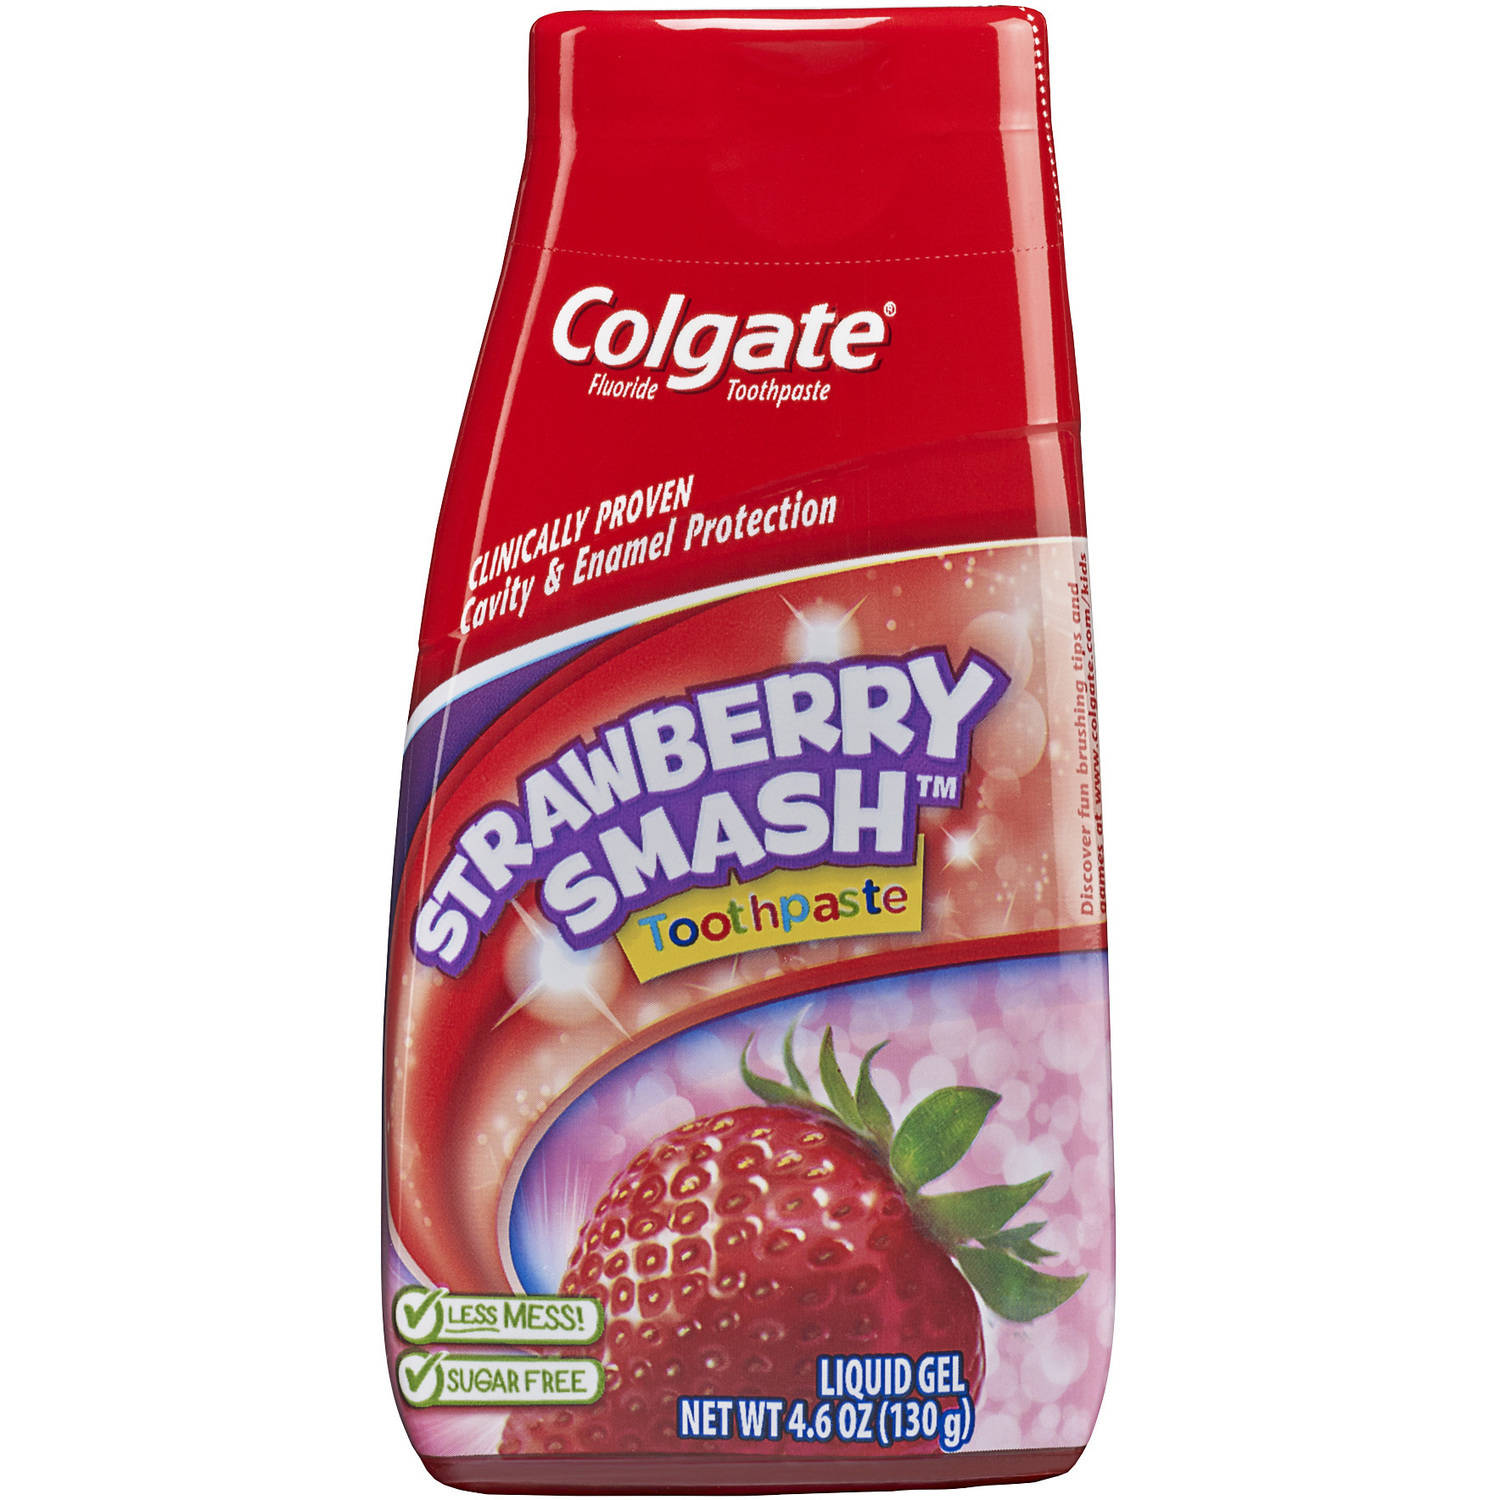 Colgate Strawberry Smash Liquid Gel Fluoride Toothpaste, 4.6 oz